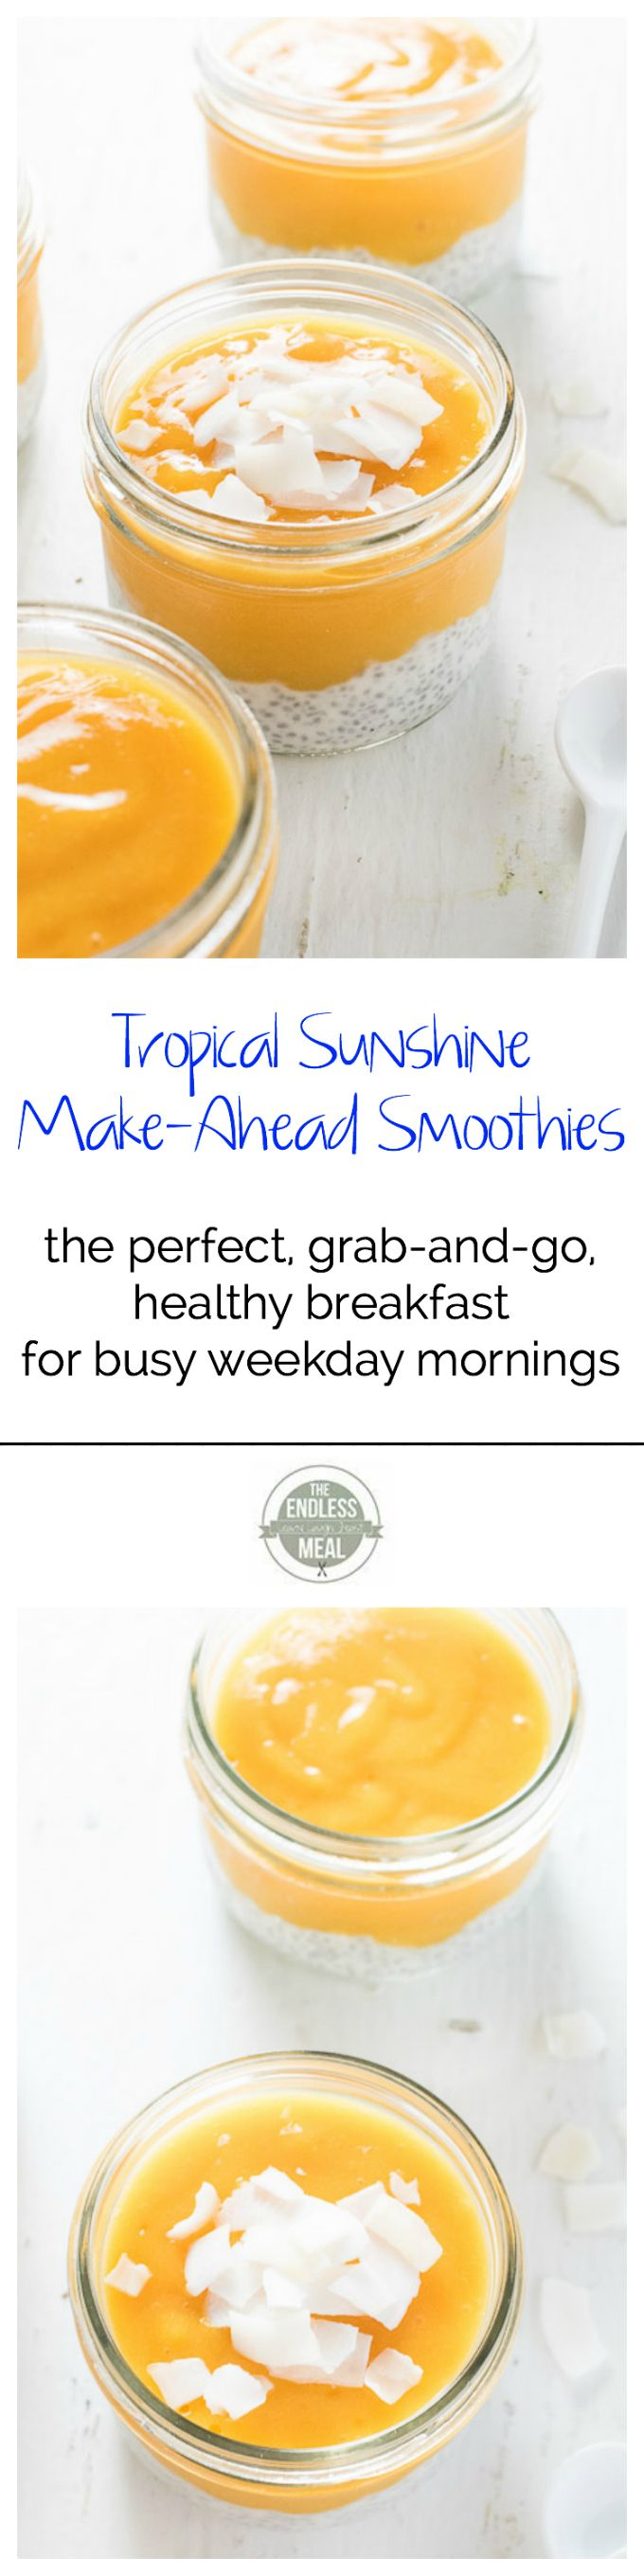 Tropical Sunshine Make-Ahead Smoothies | A healthy (and vegan!) grab and go breakfast for busy weekday mornings. | theendlessmeal.com